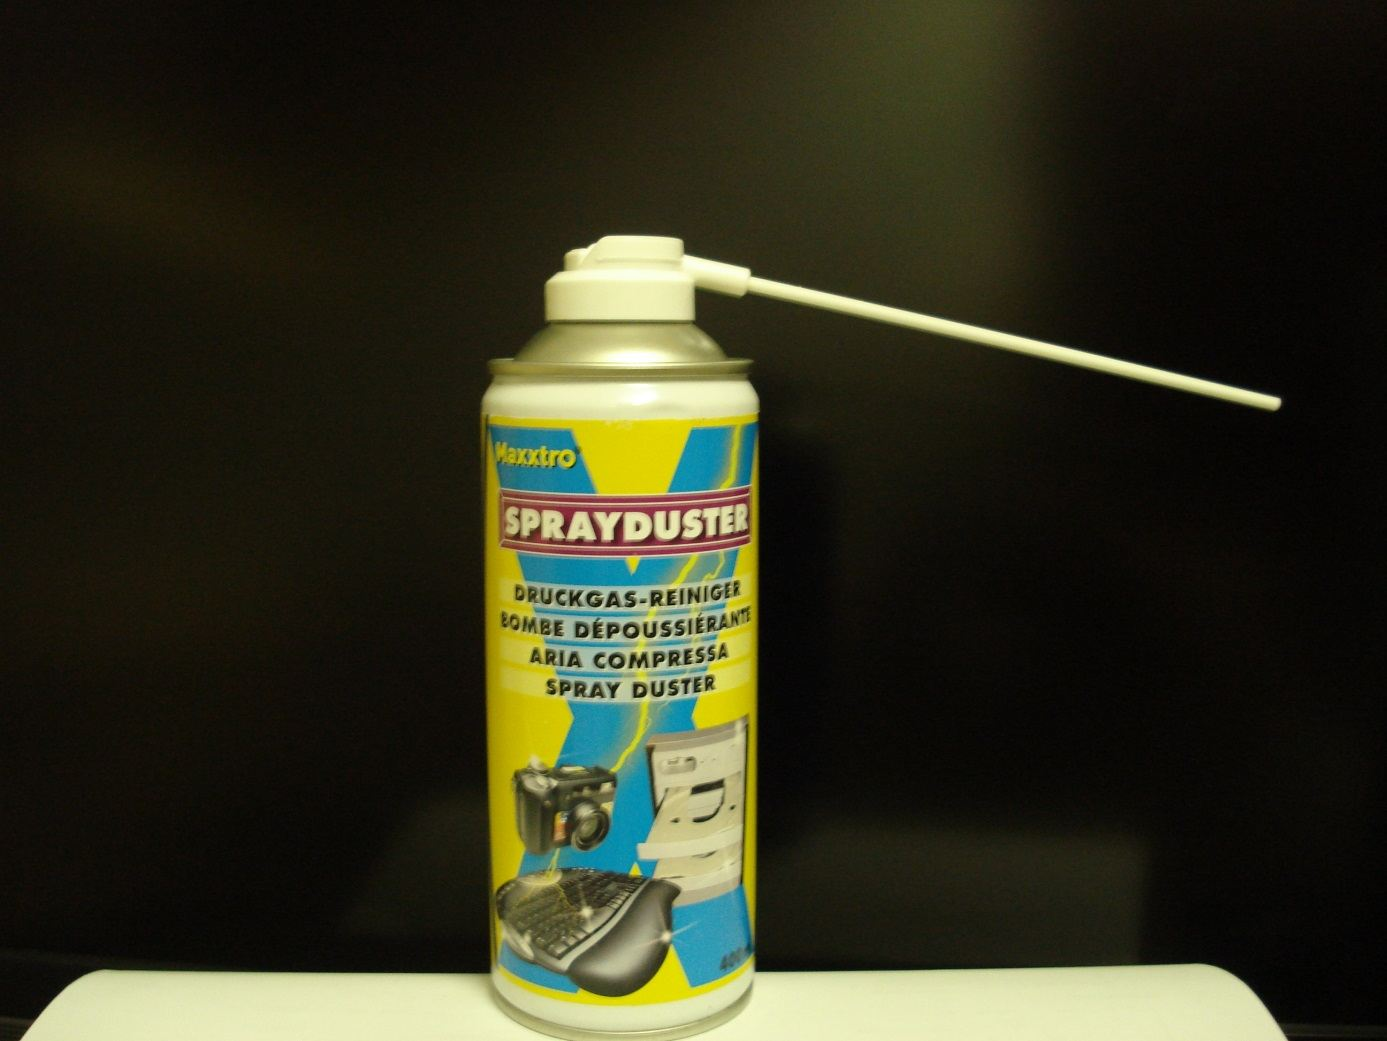 Spray duster